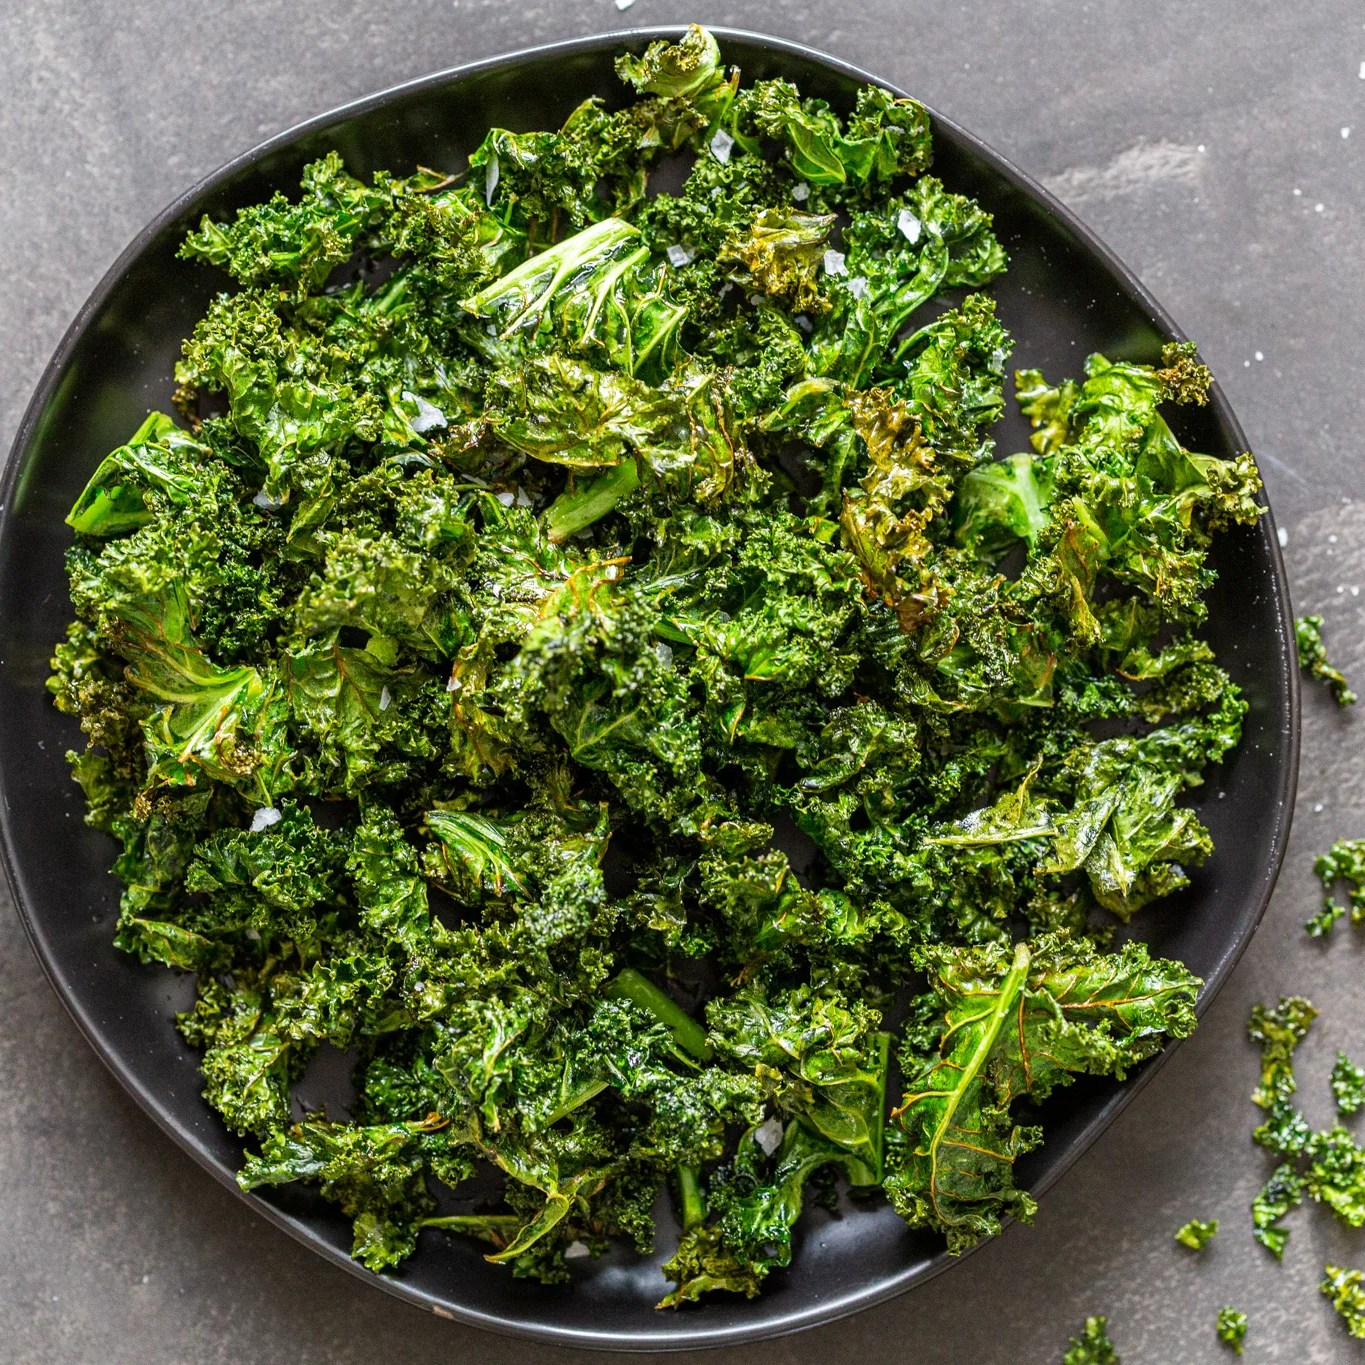 Air fryer kale chips on a plate